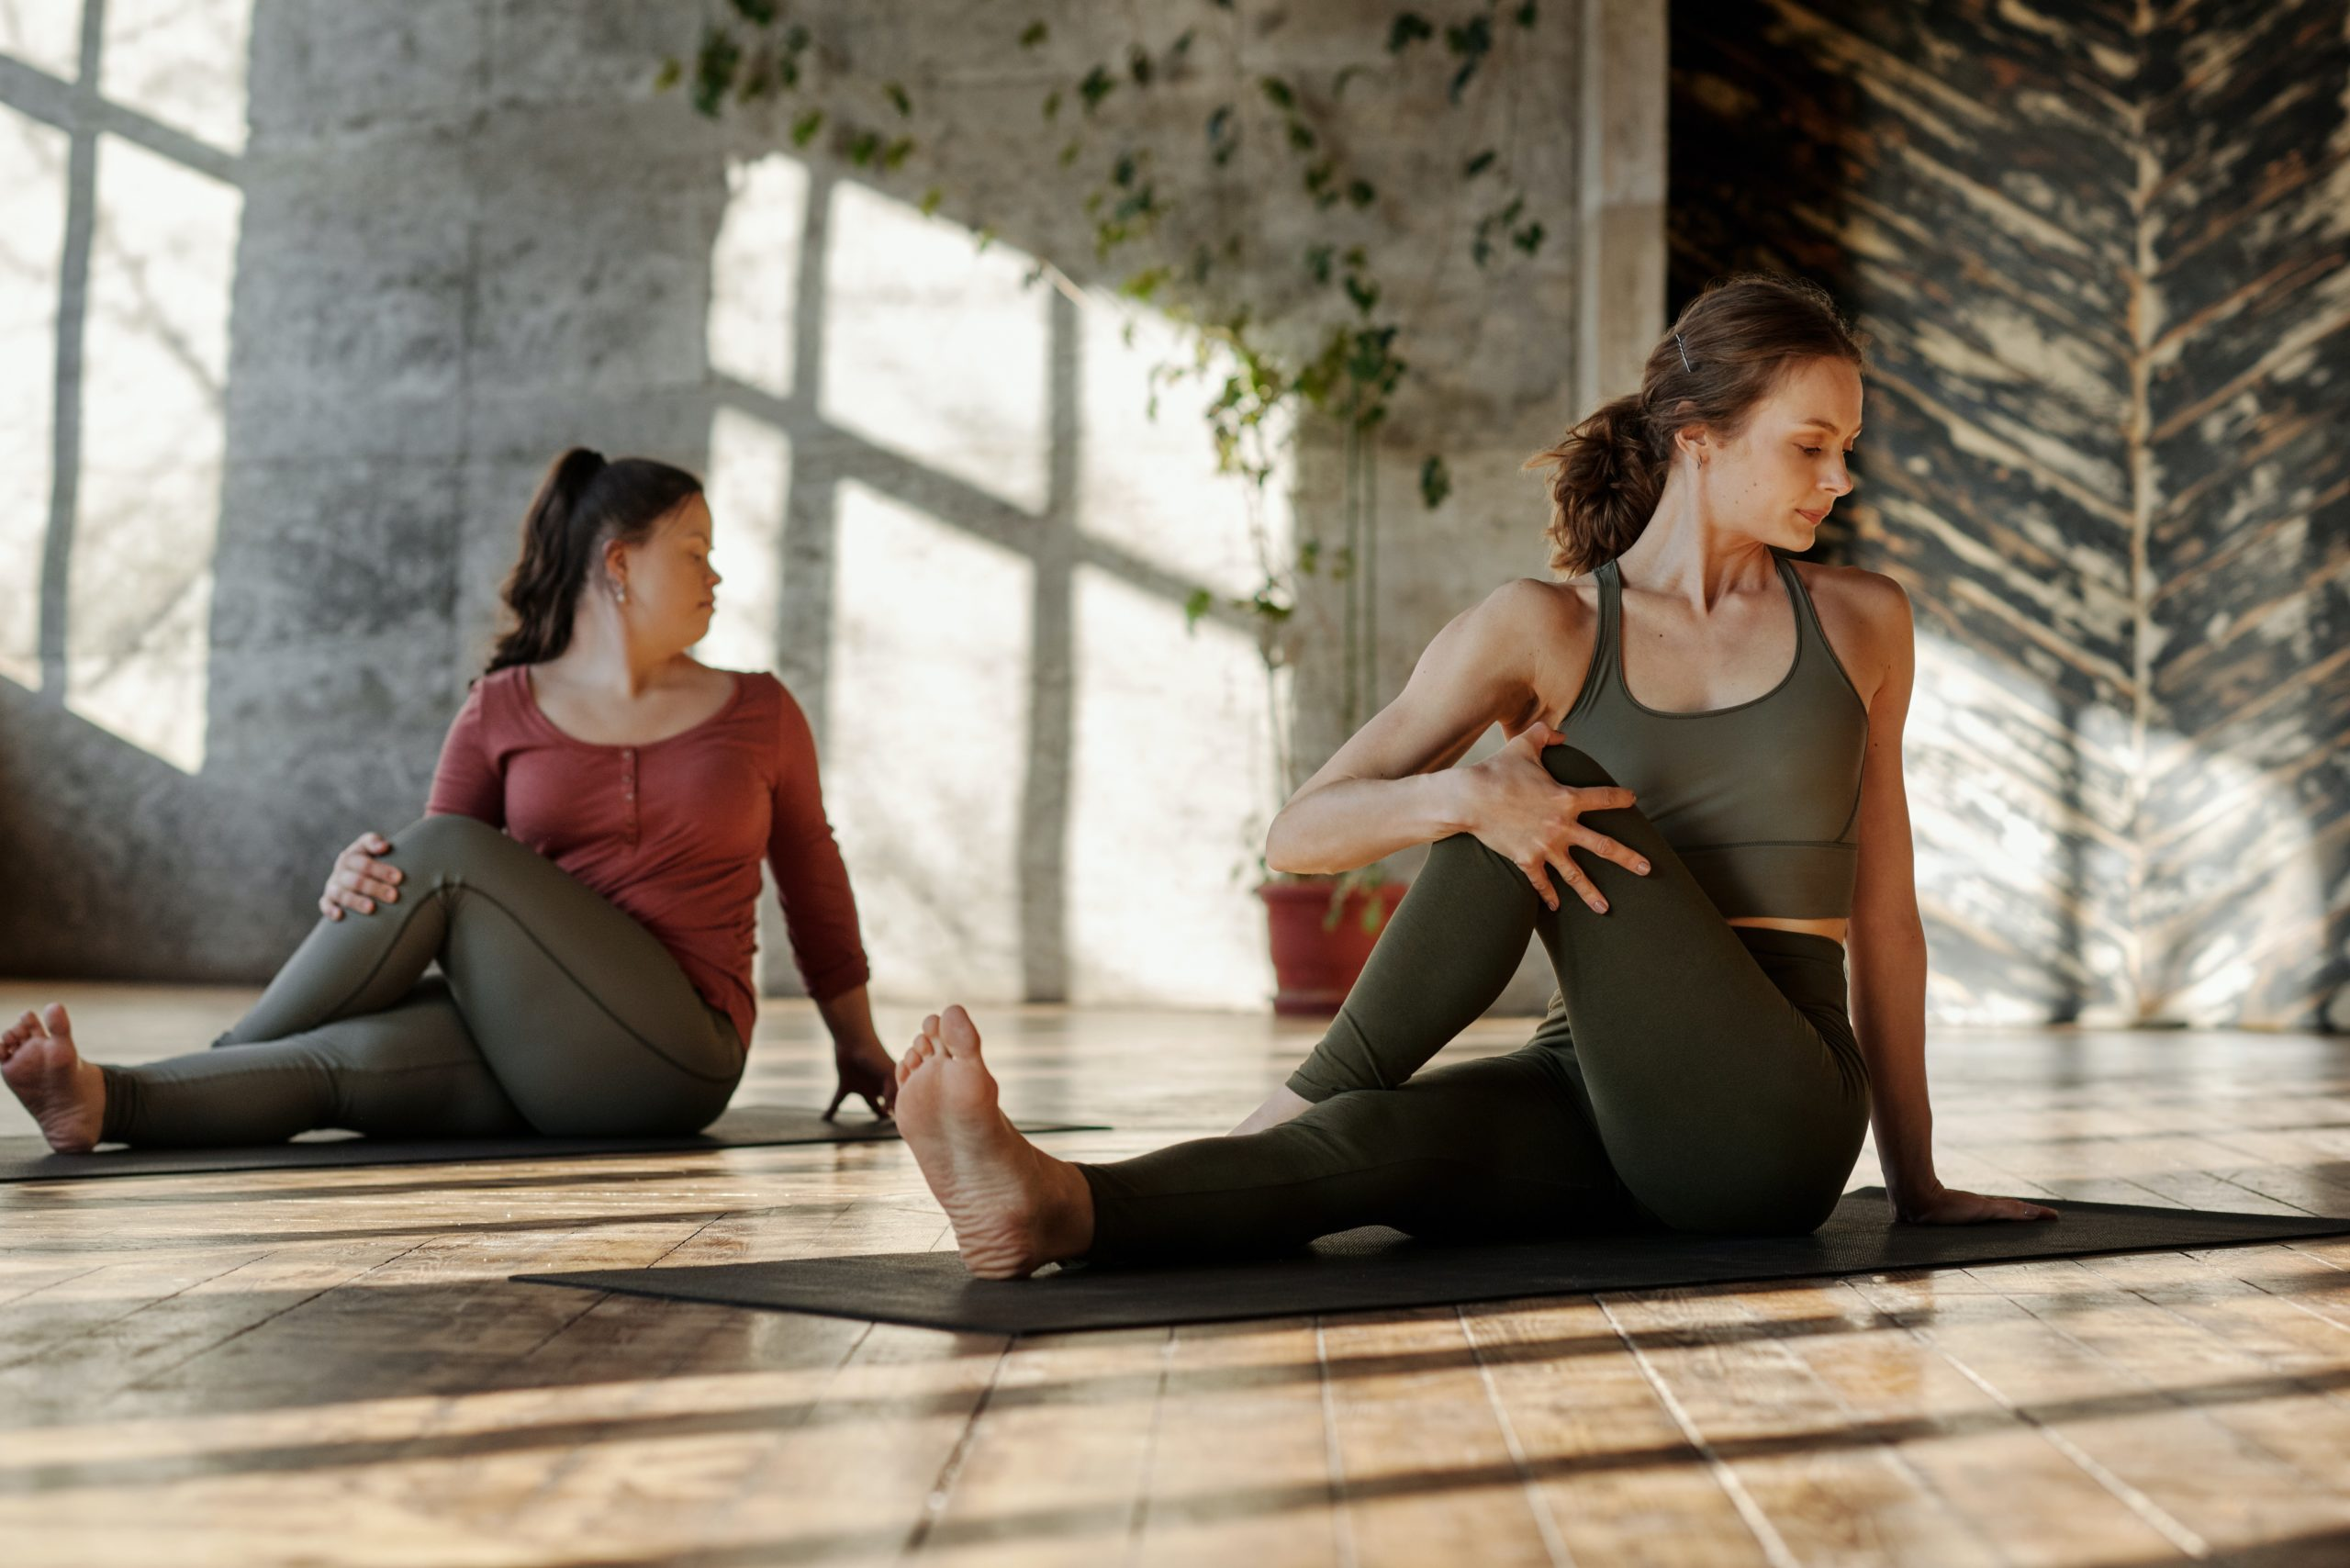 photo-of-women-stretching-together-4056723